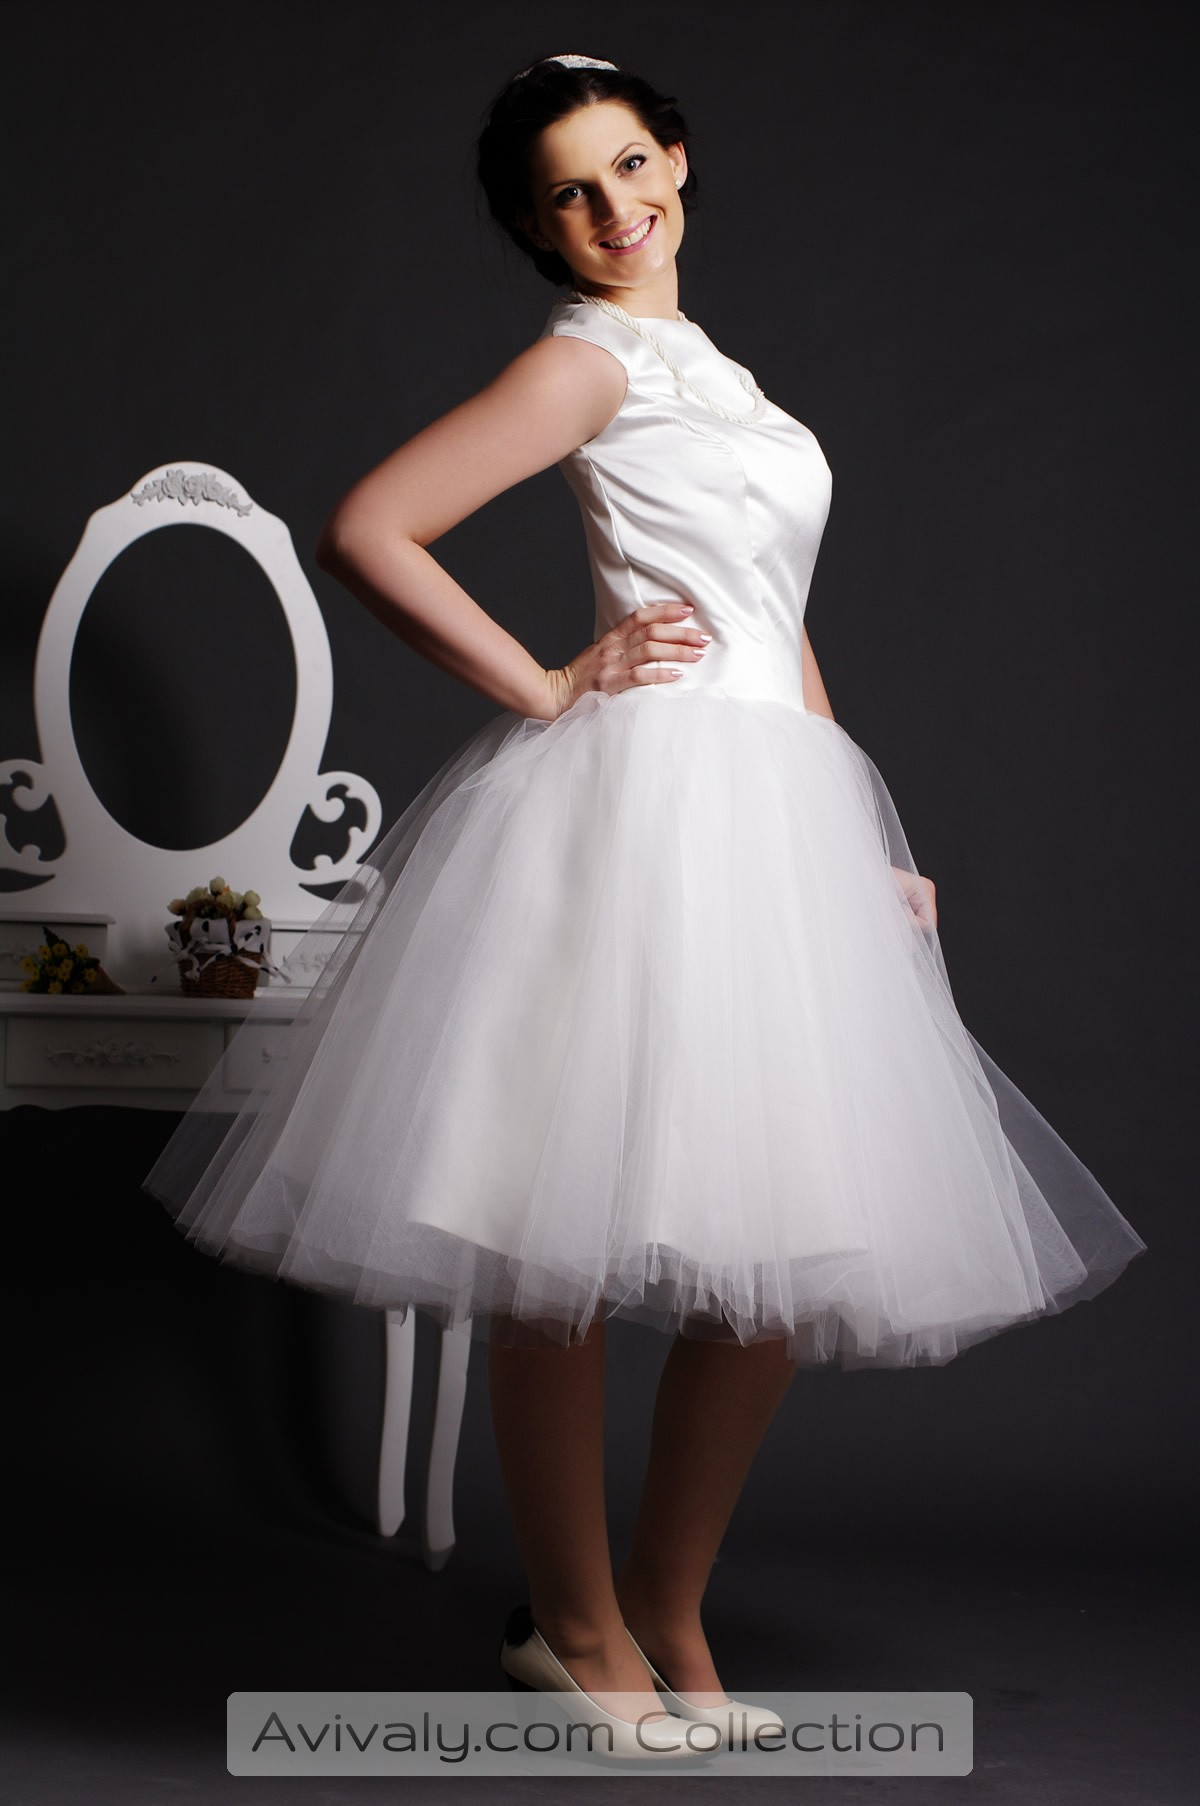 Musica - Layered & Pleated Tulle Ball Gown Skirt in Tea Length